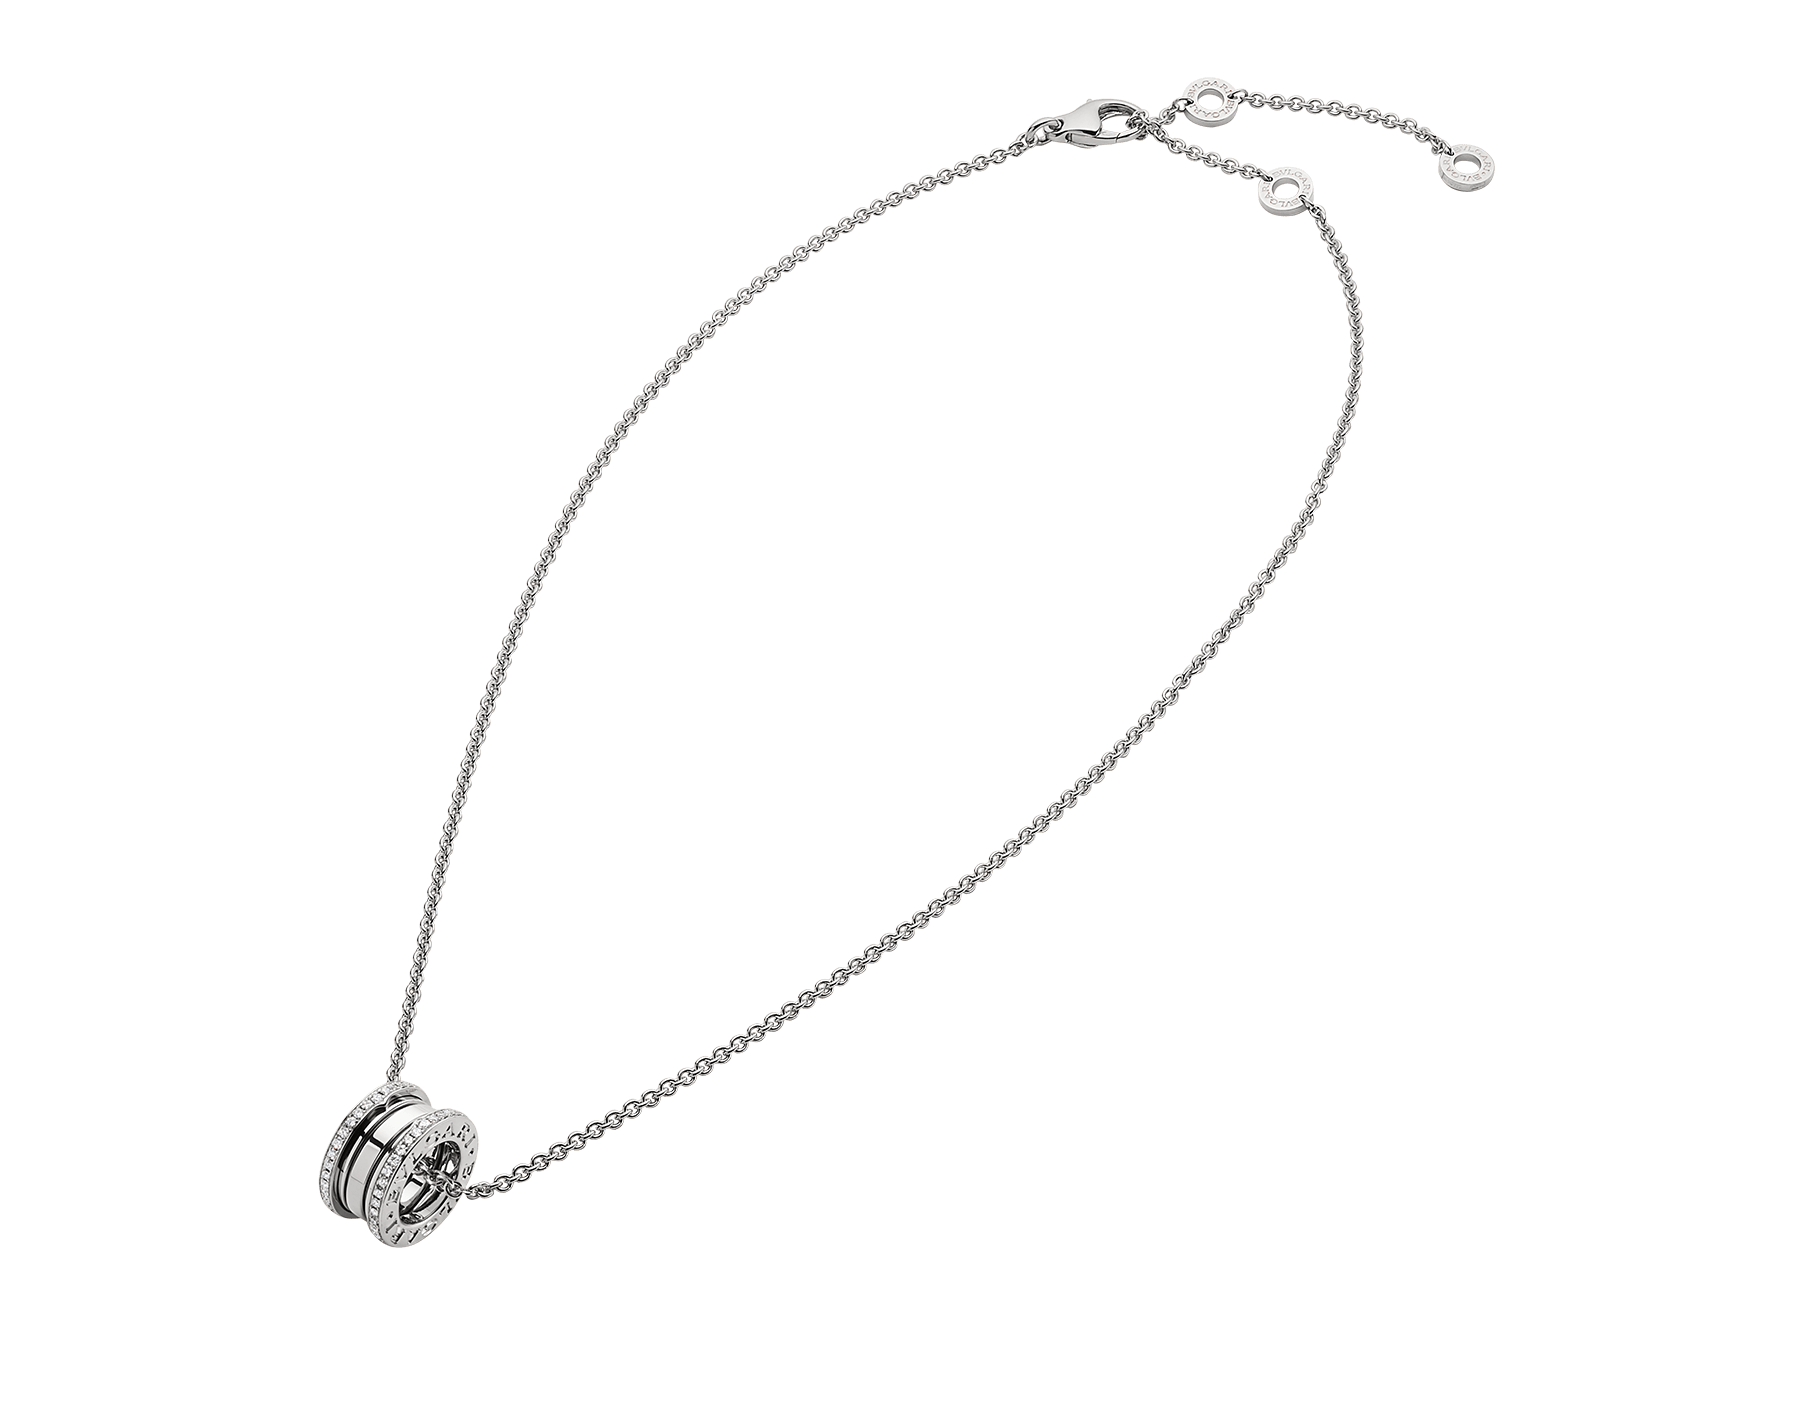 B.zero1 necklace with 18 kt white gold chain and 18 kt white gold round pendant set with pavé diamonds on the edges. 350054 image 2